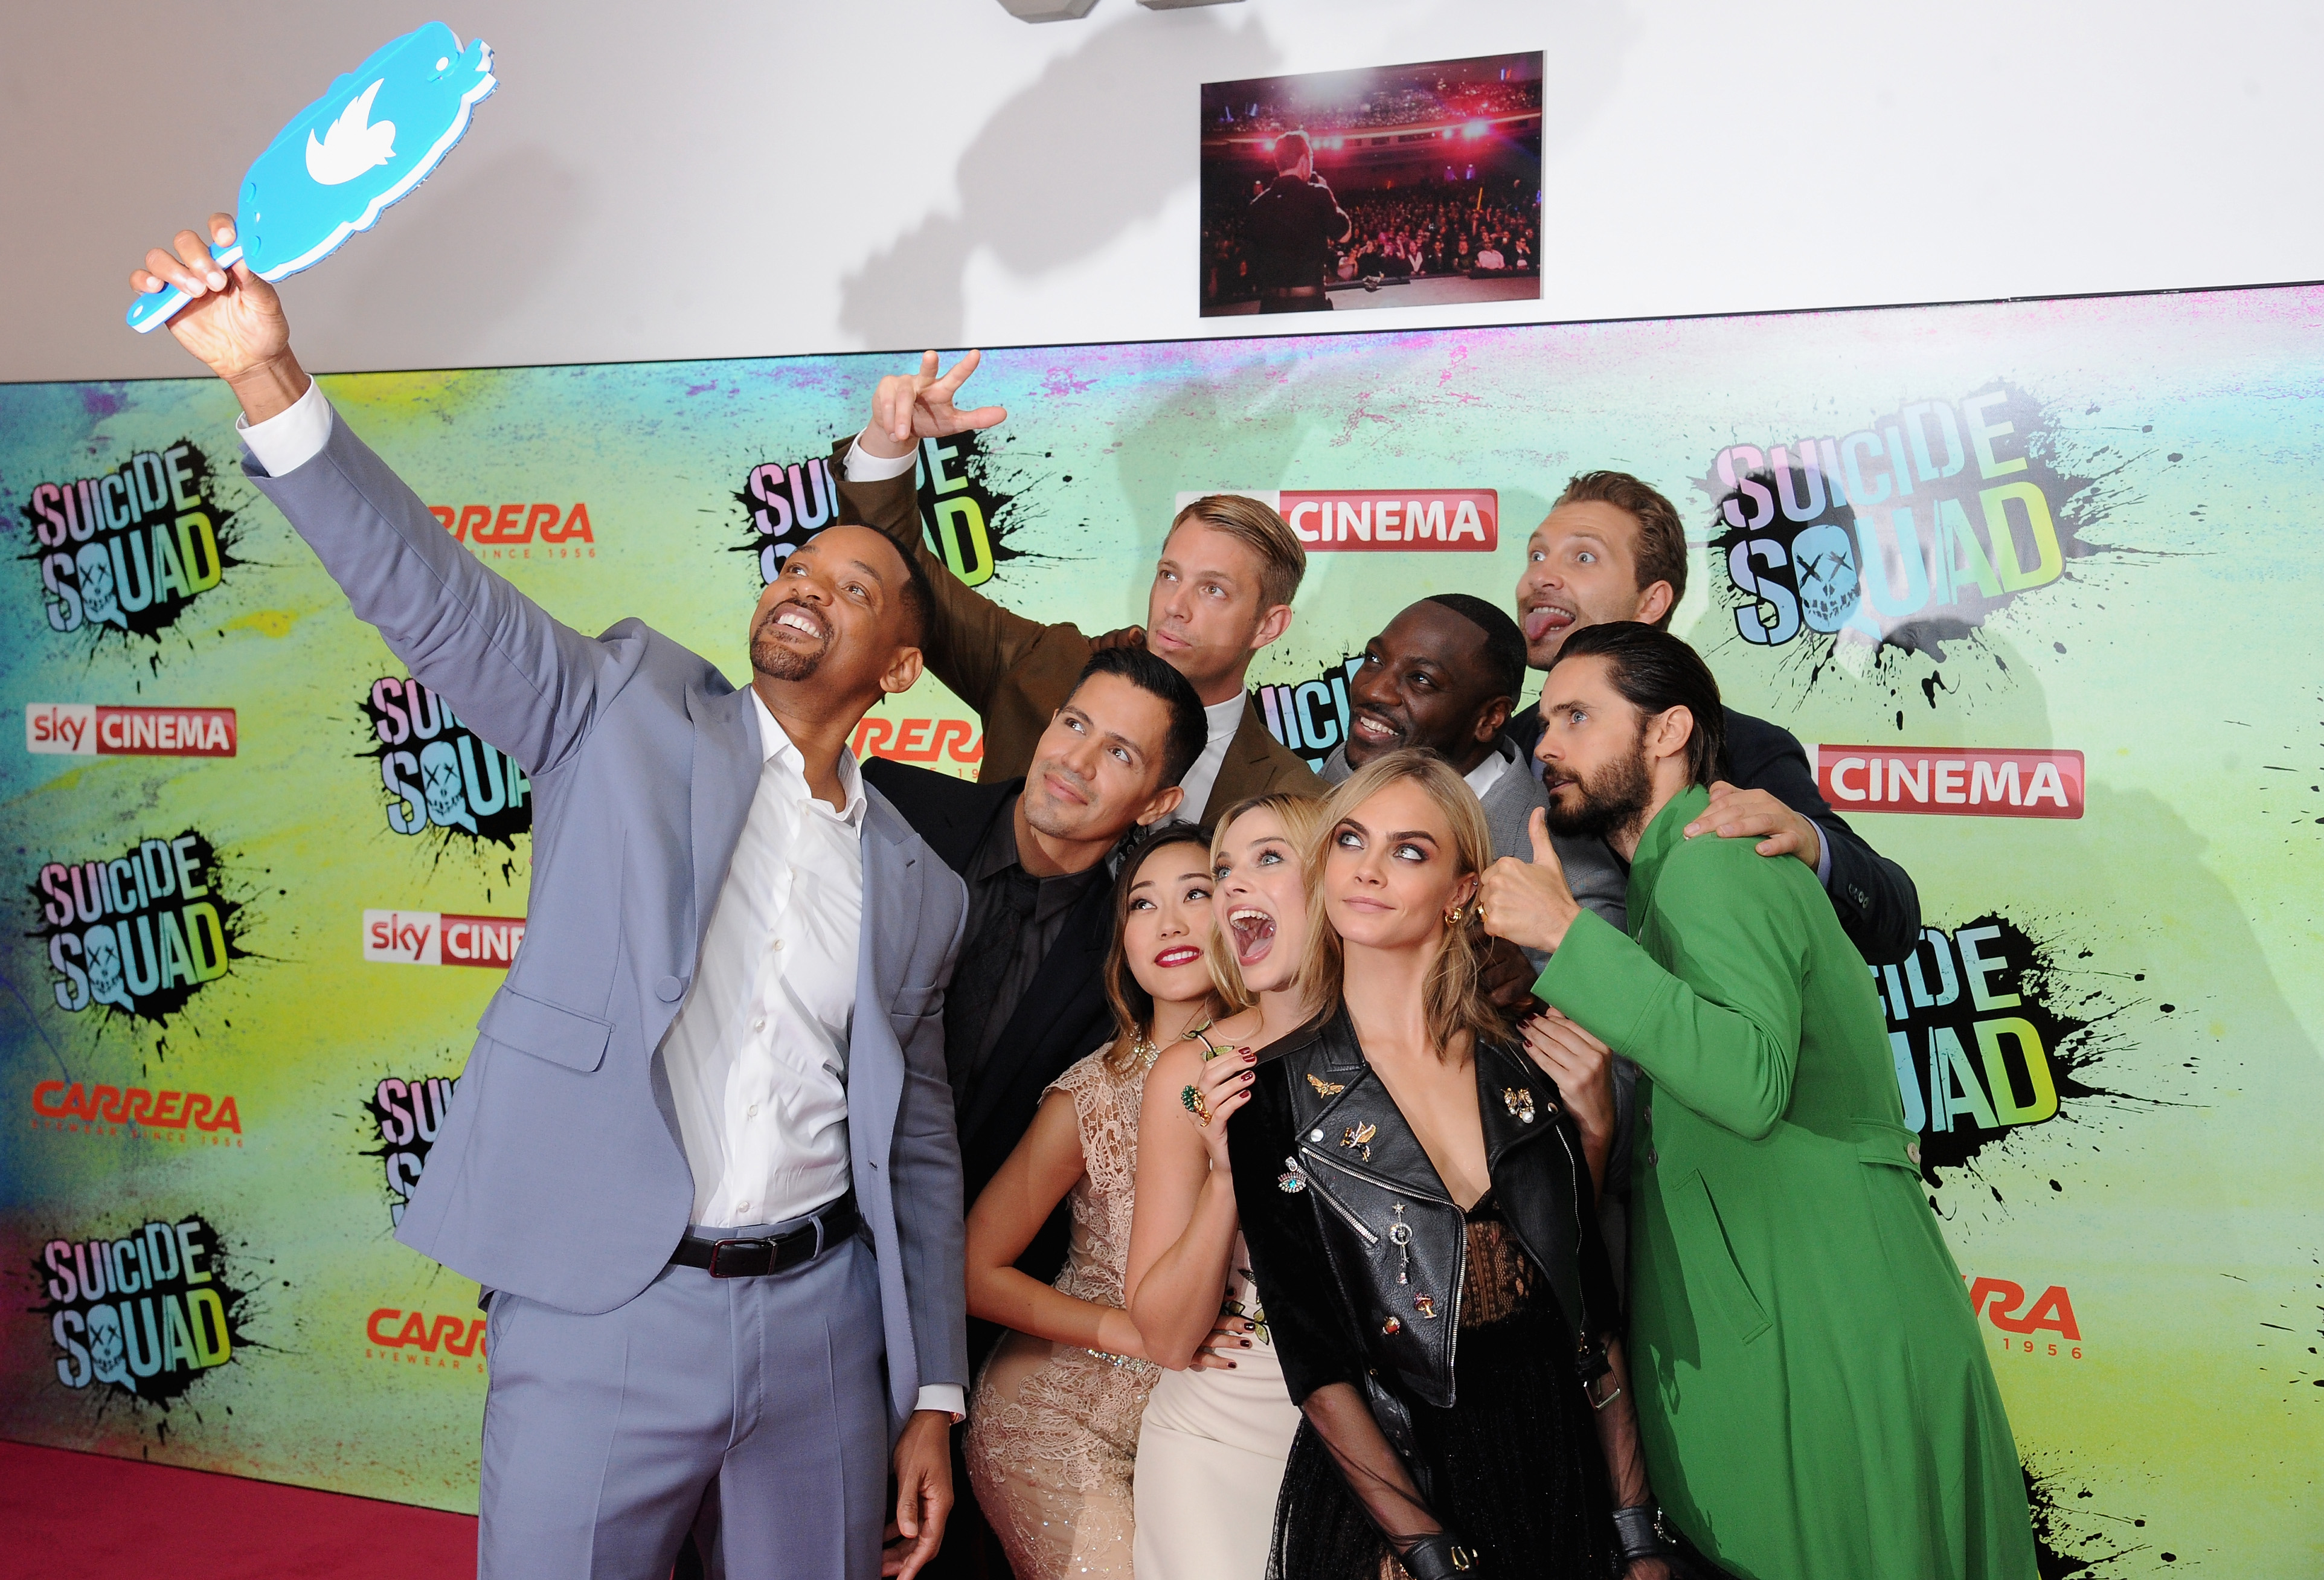 LONDON, ENGLAND - AUGUST 03:  (clockwise from L) Will Smith poses for a selfie with Jay Hernandez, Joel Kinnaman, Adewale Akinnuoye-Agbaje, Jai Courtney, Jared Leto, Cara Delevingne, Margot Robbie and Karen Fukuhara at the European Premiere of  Suicide Squad  at Odeon Leicester Square on August 3, 2016 in London, England.  (Photo by Dave J Hogan/Getty Images)